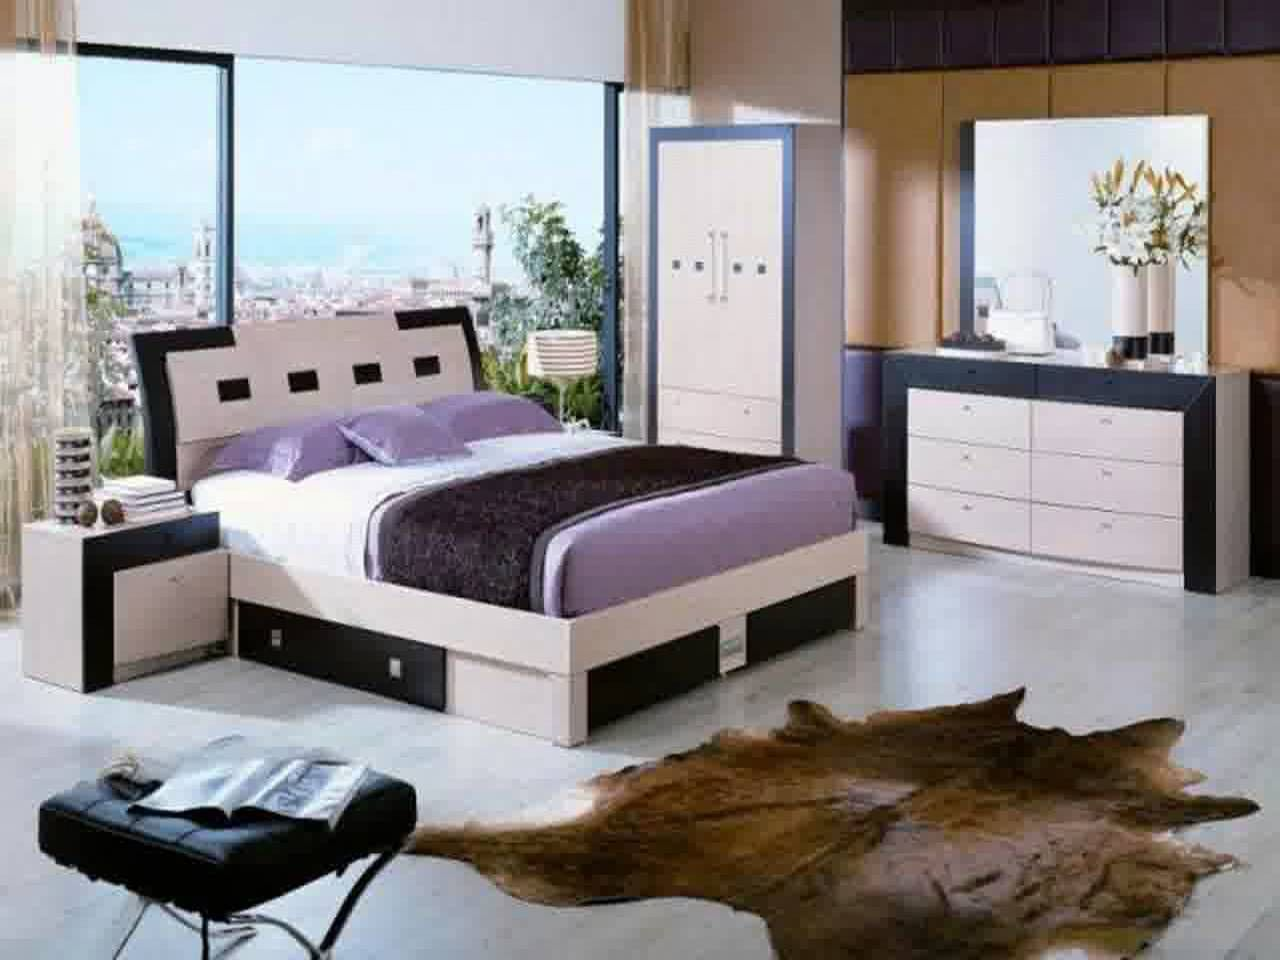 bedroom furniture sets online. bedroom furniture sets online  design ideas   pinterest